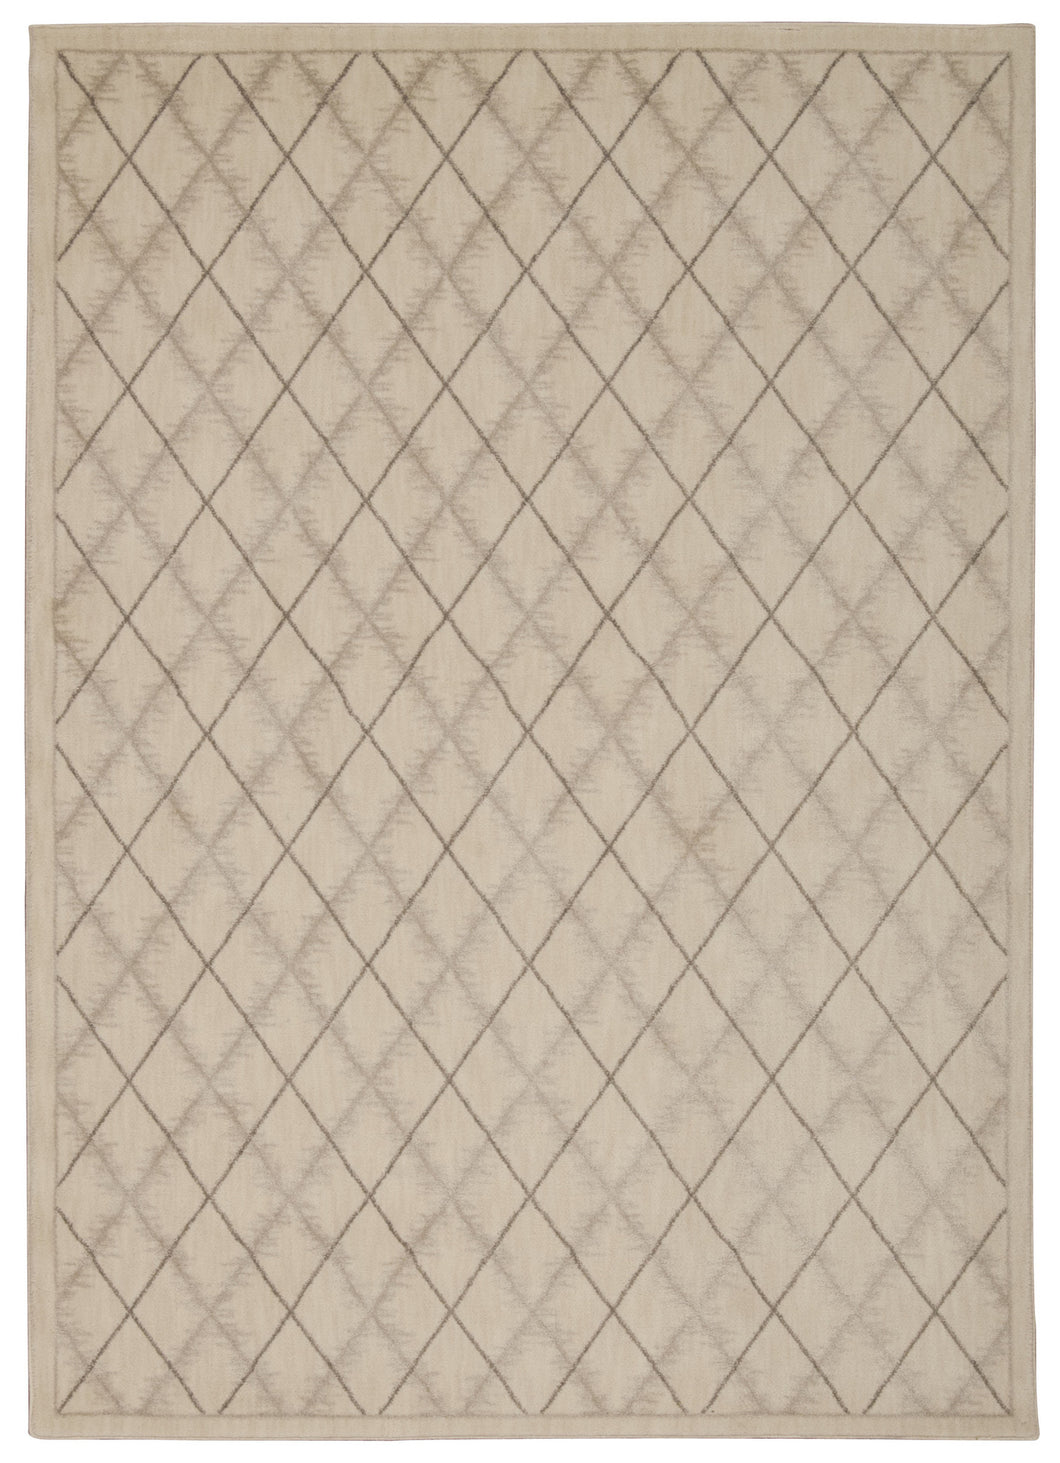 Nourison Tranquility Ivory Area Rug TNQ01 IV